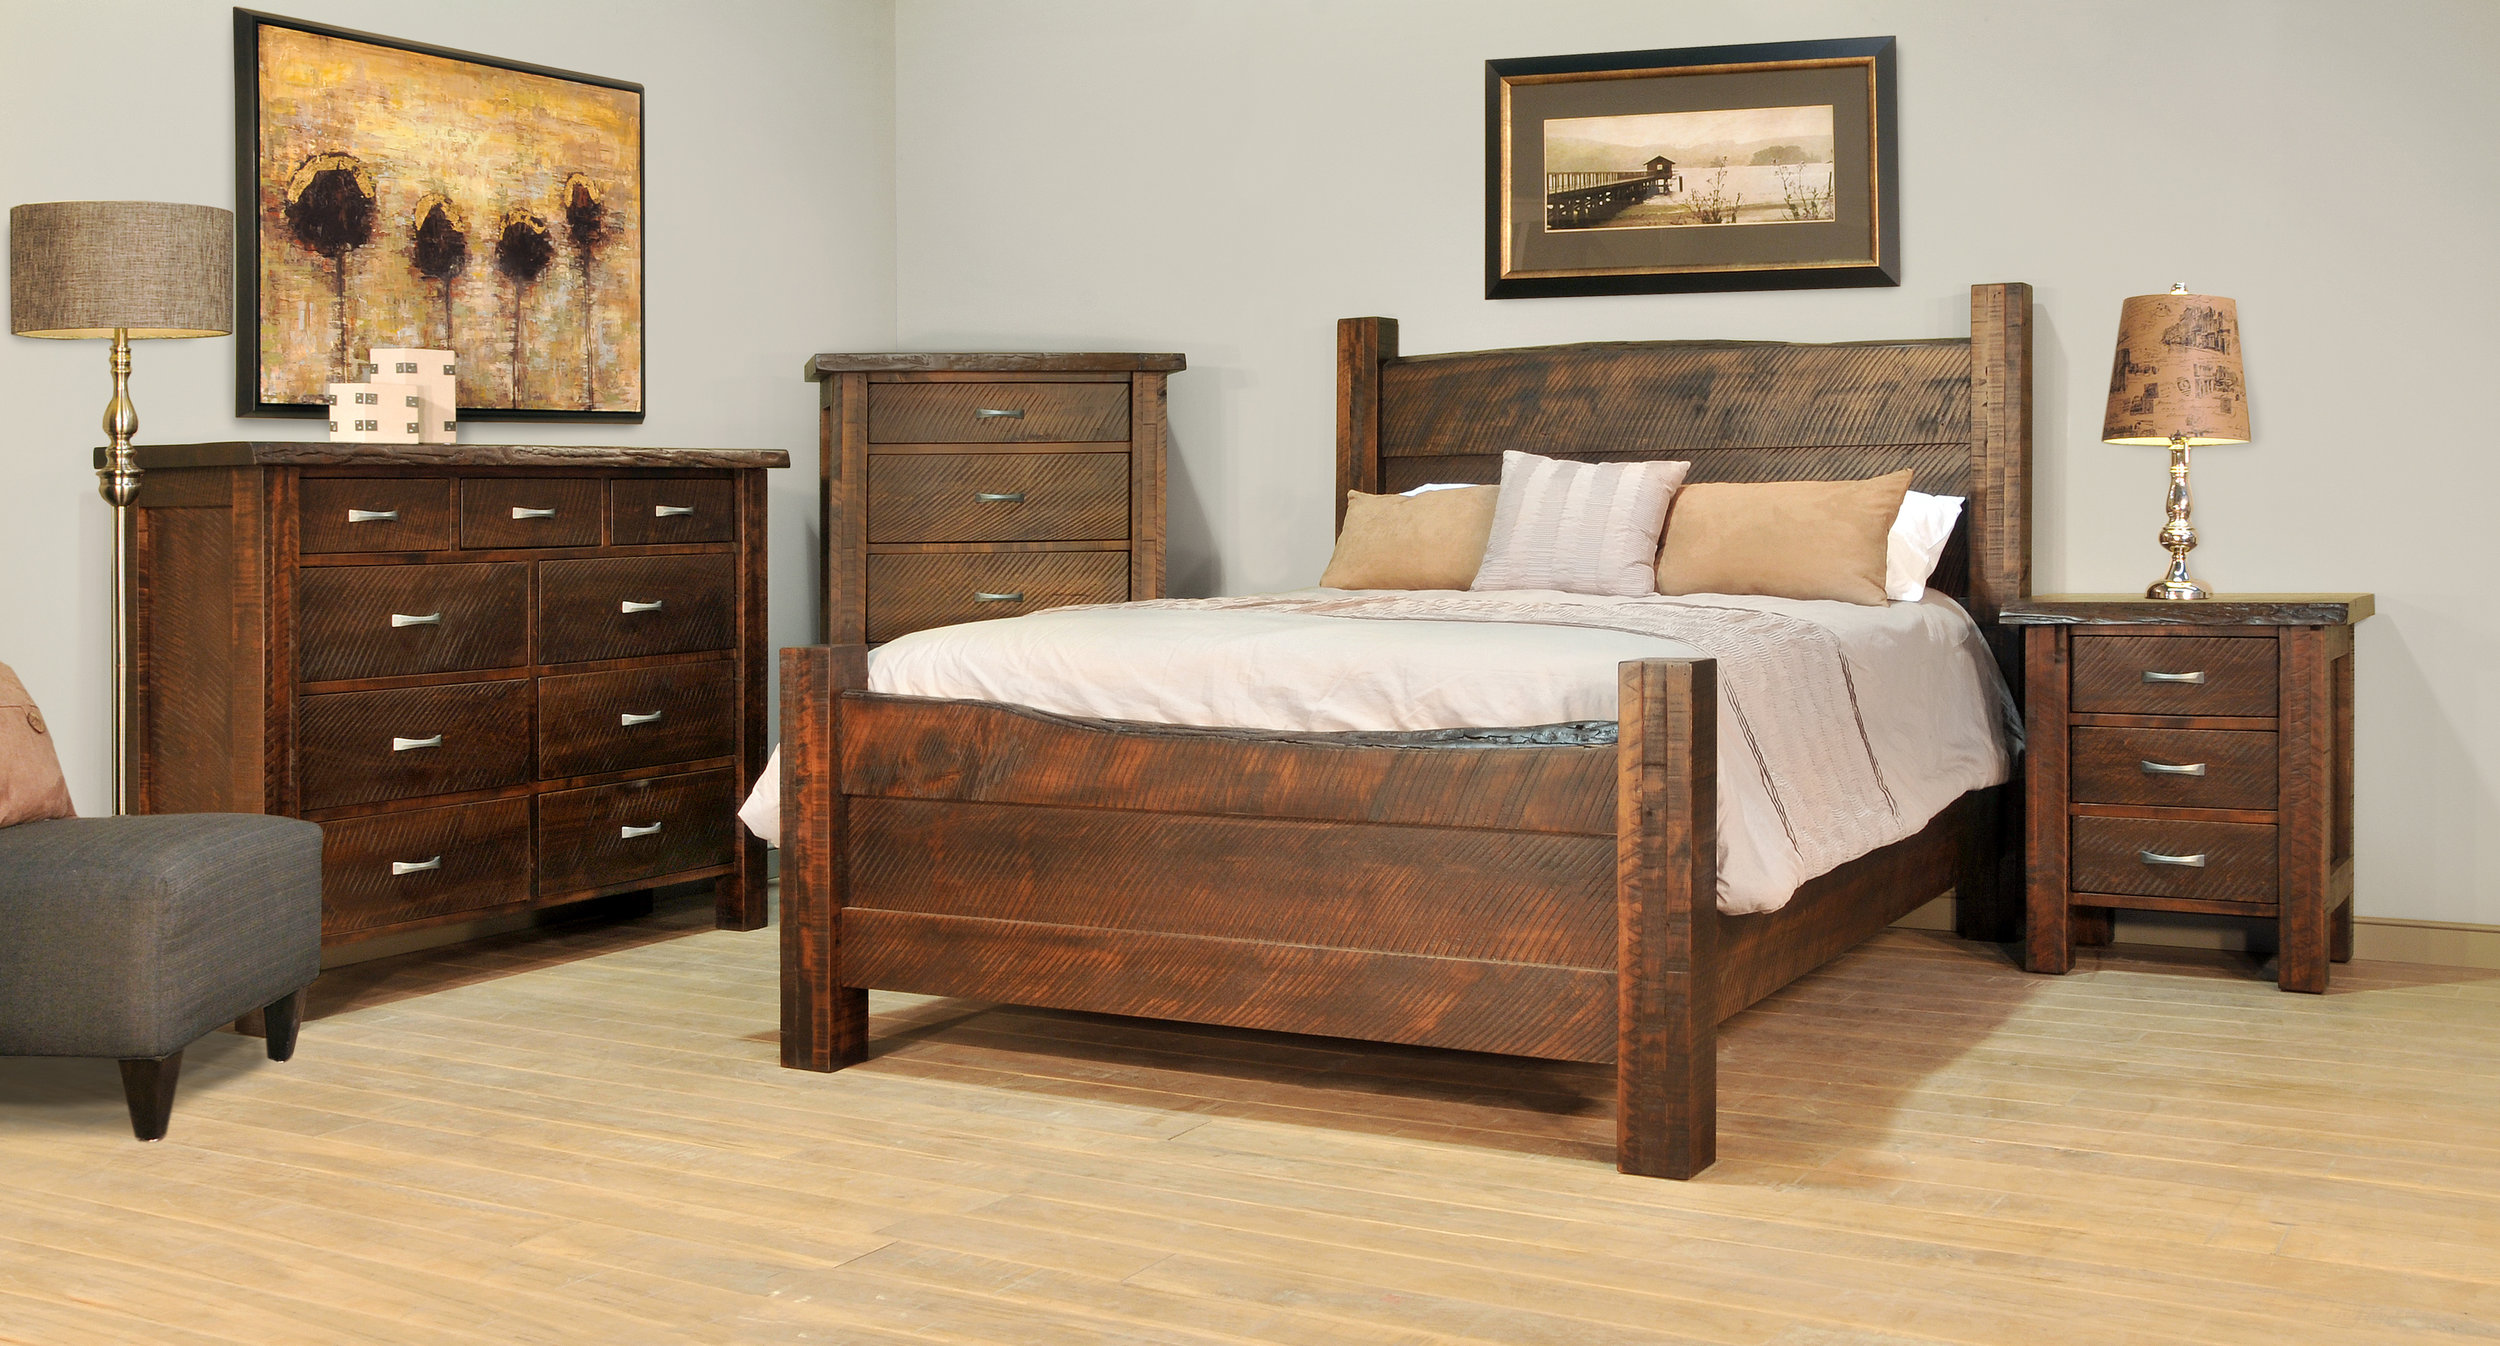 LIve edge furniture for sale